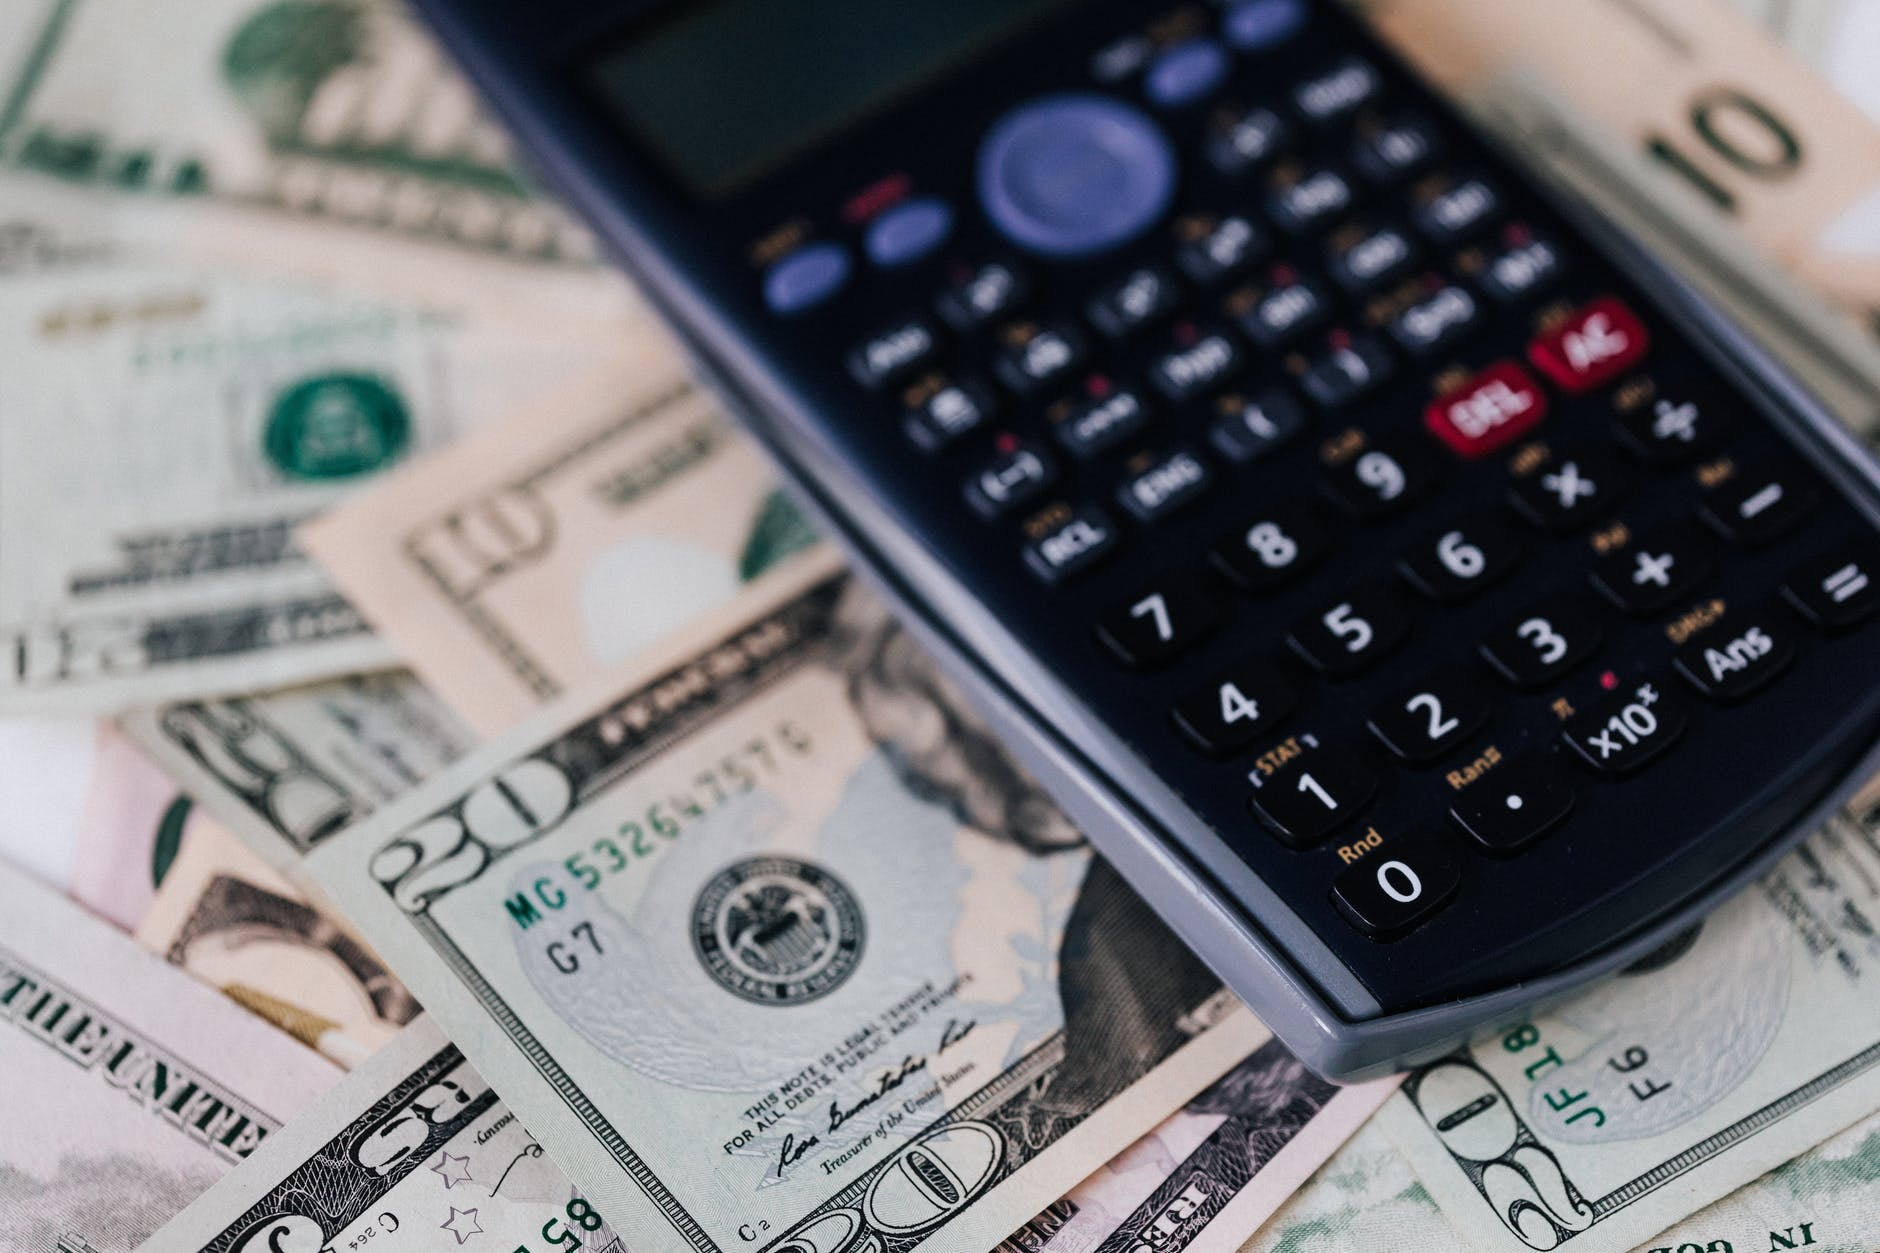 There is money and a calculator for the savings and deals you can get on this page